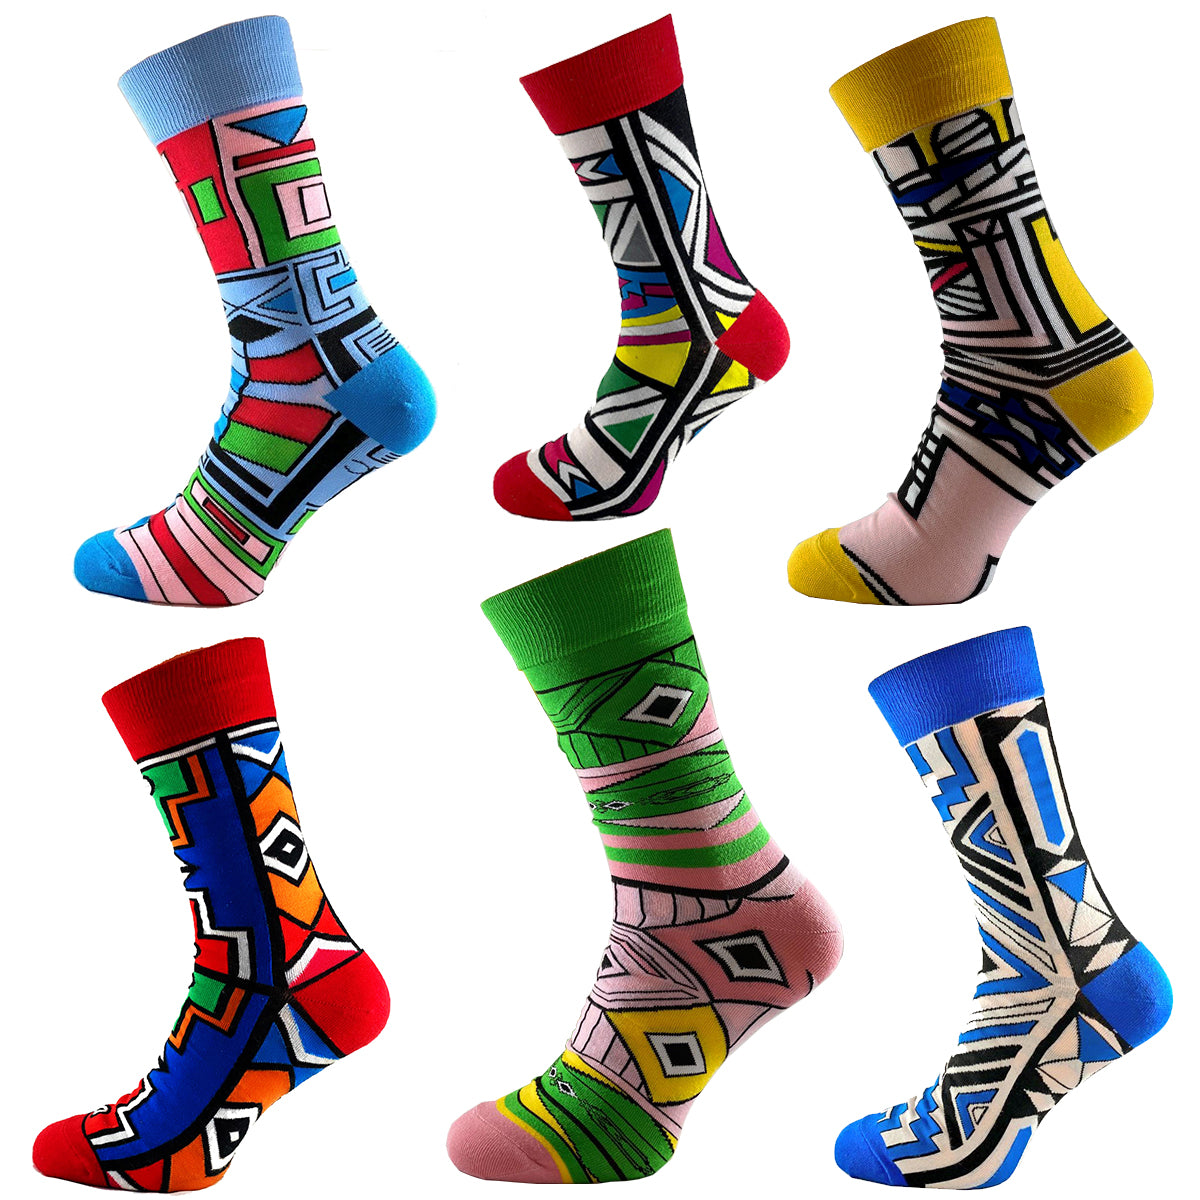 SMC Collection - African Print  Unisex Cultural Fashion Socks - 6 Pack